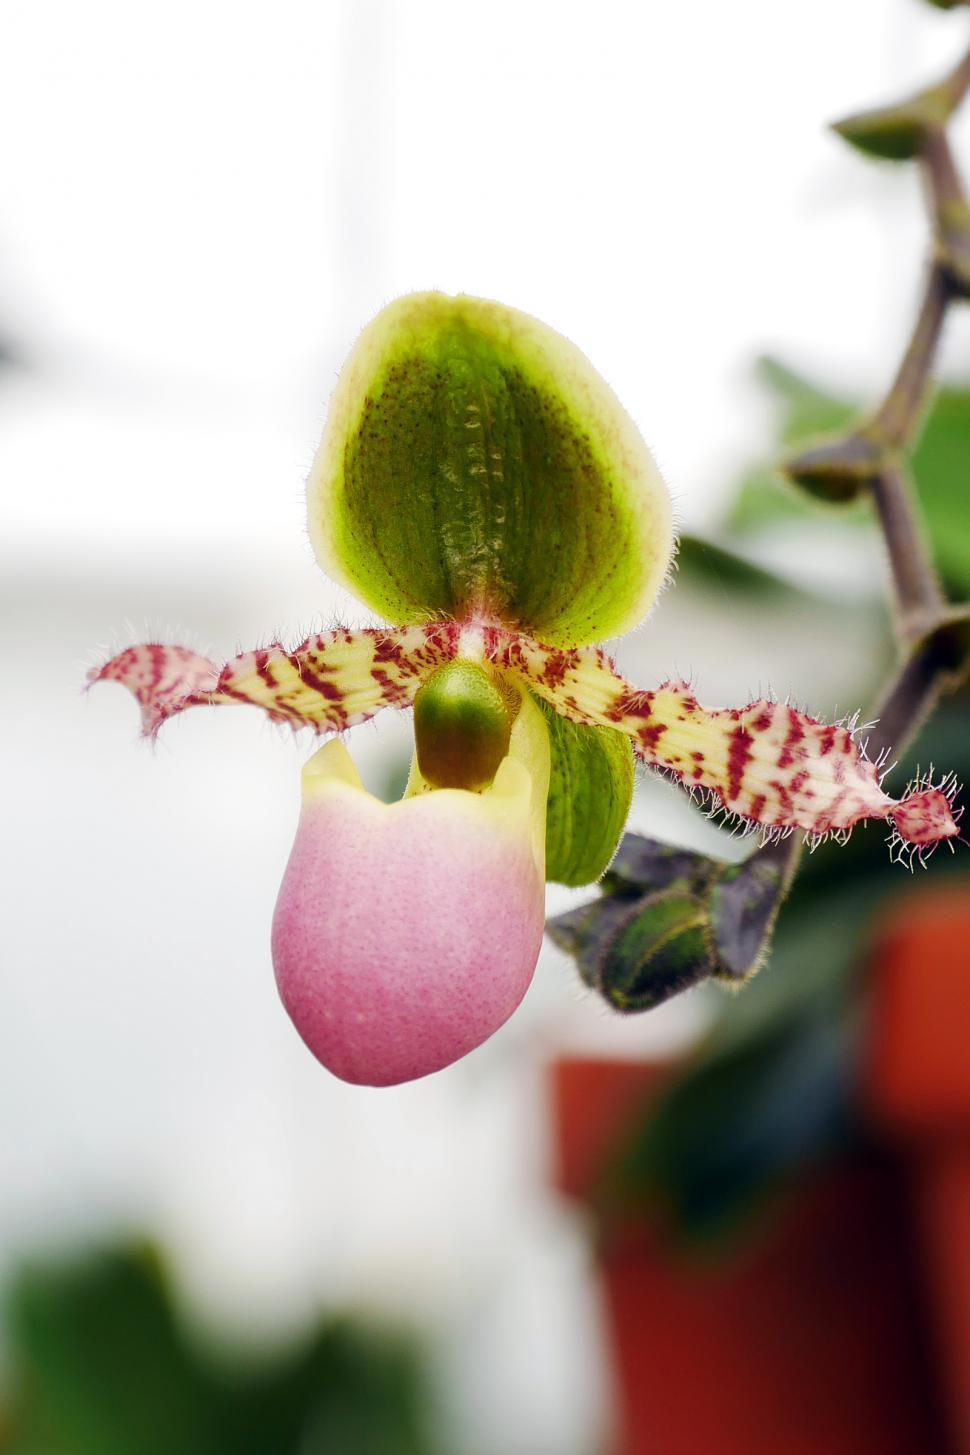 Download Free Stock HD Photo of Paphiopedilum or Slipper Orchid  Online